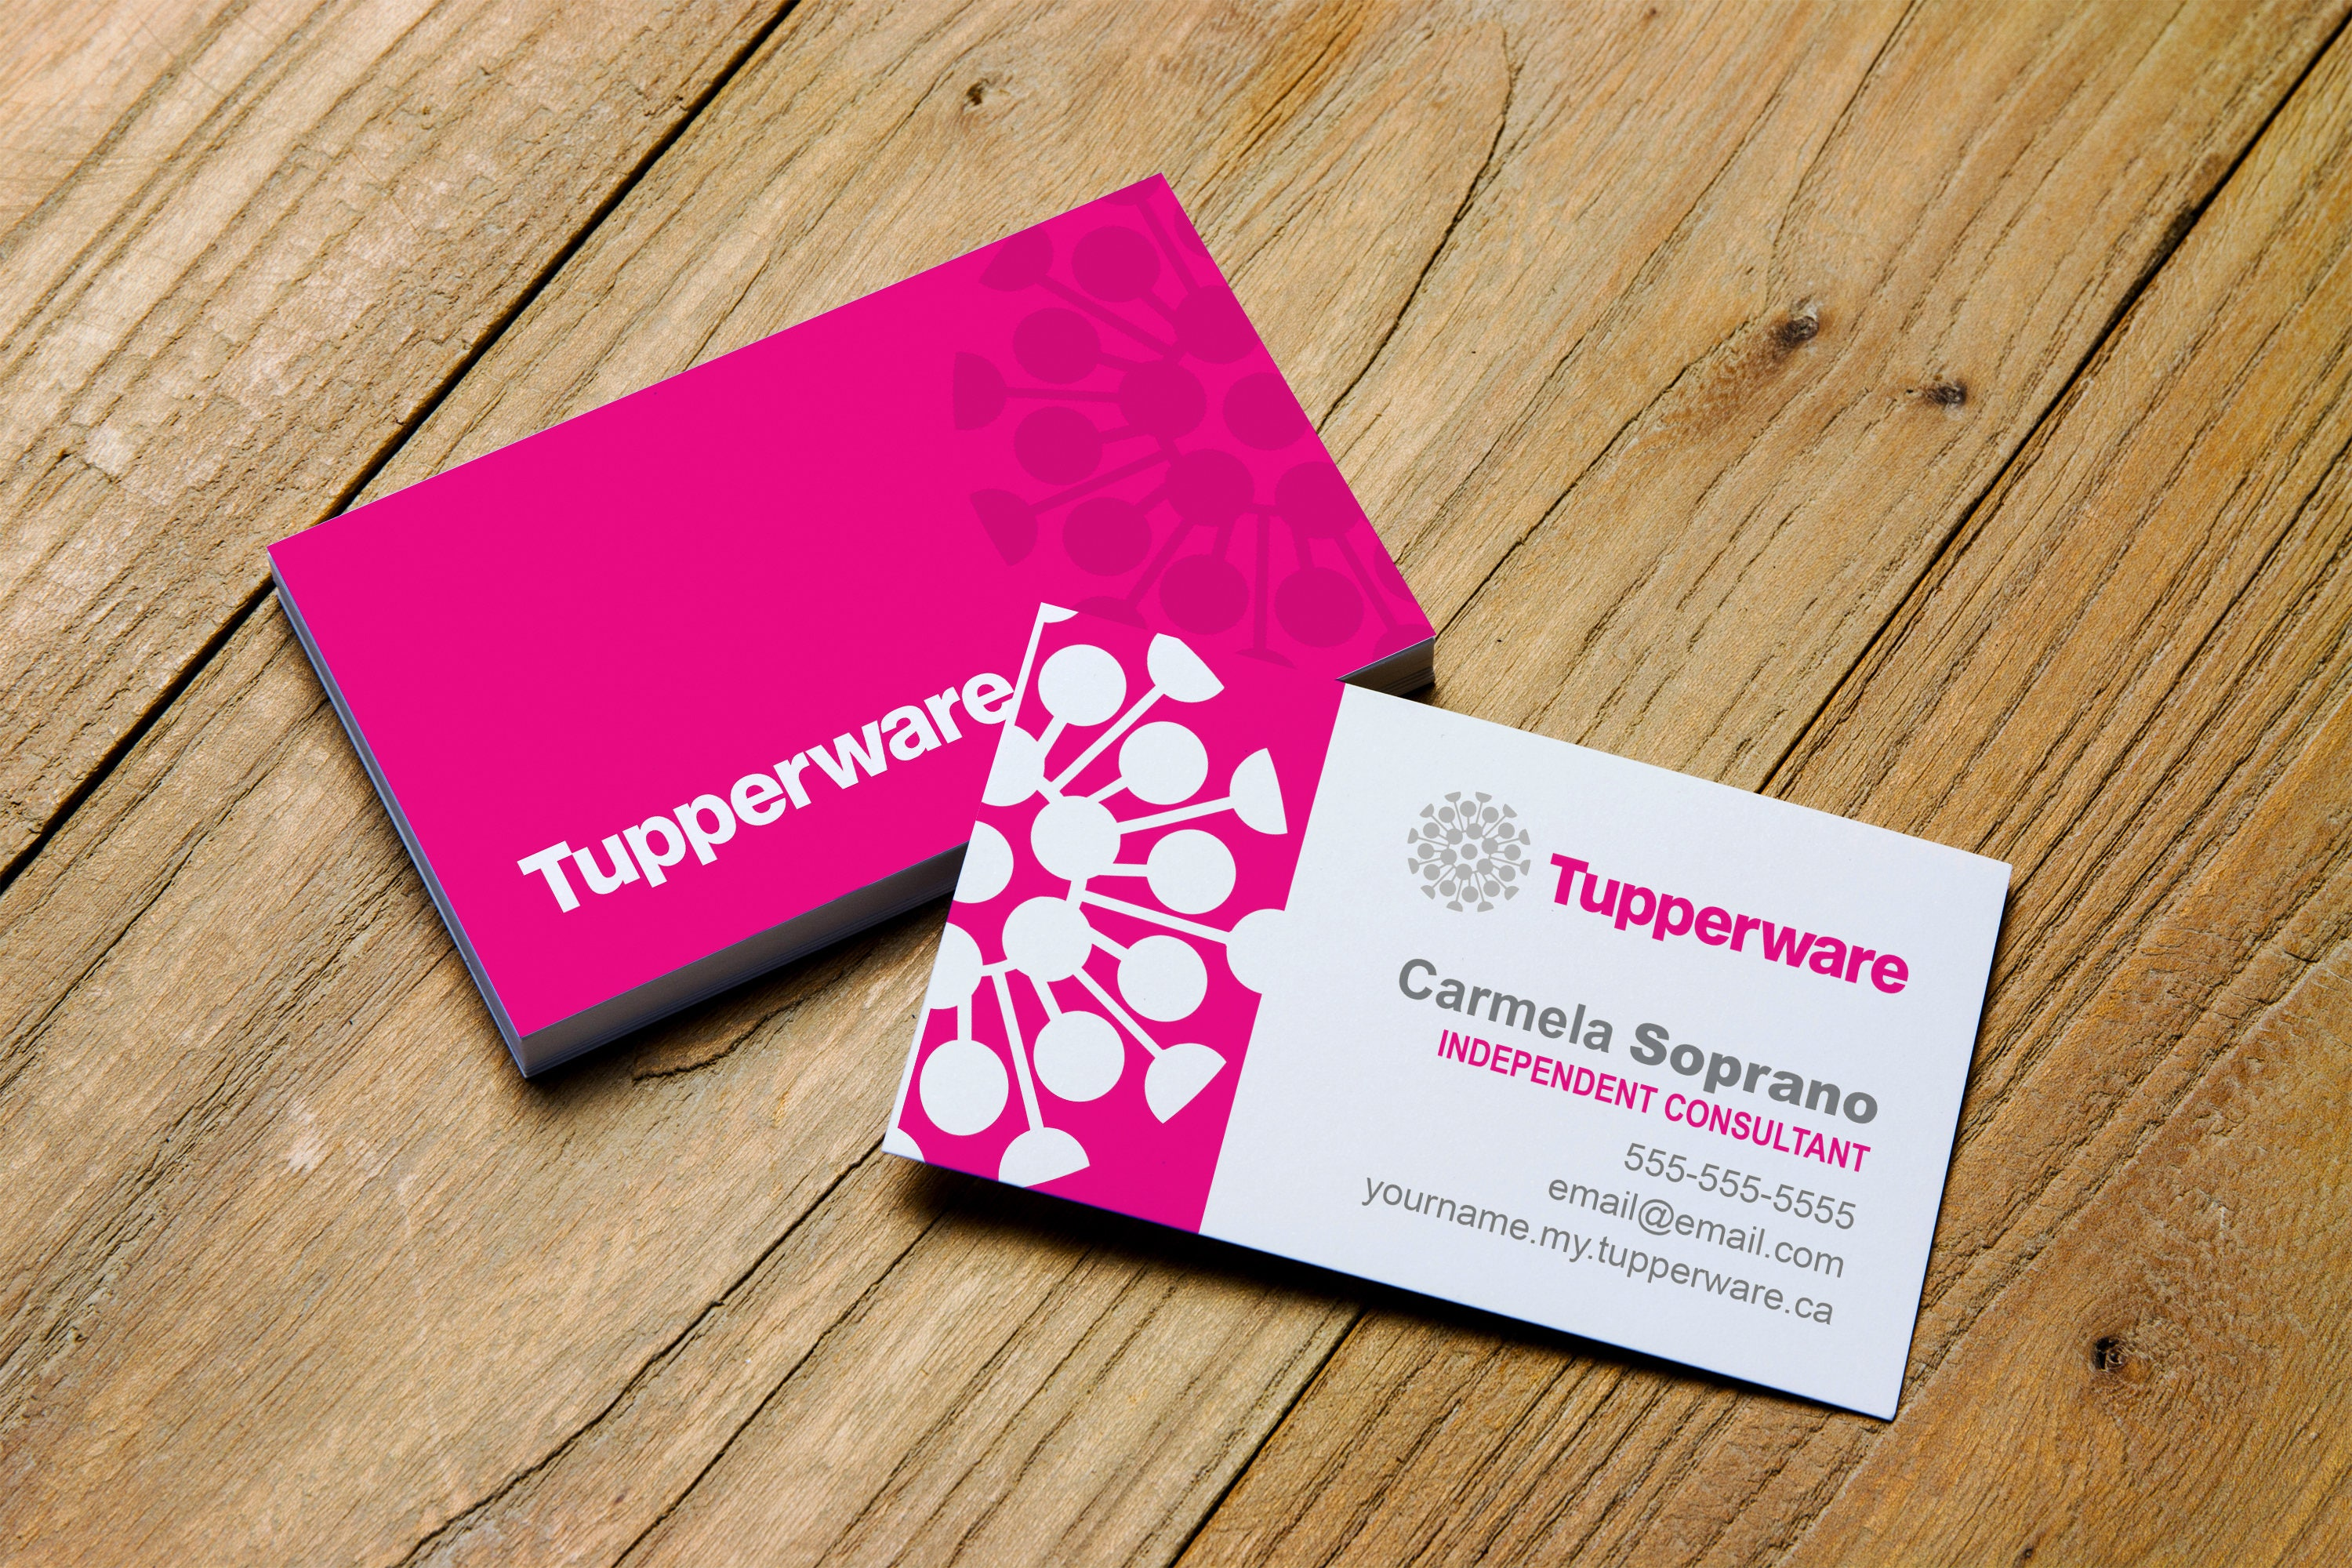 Tupperware Printable Business Card Personalized for